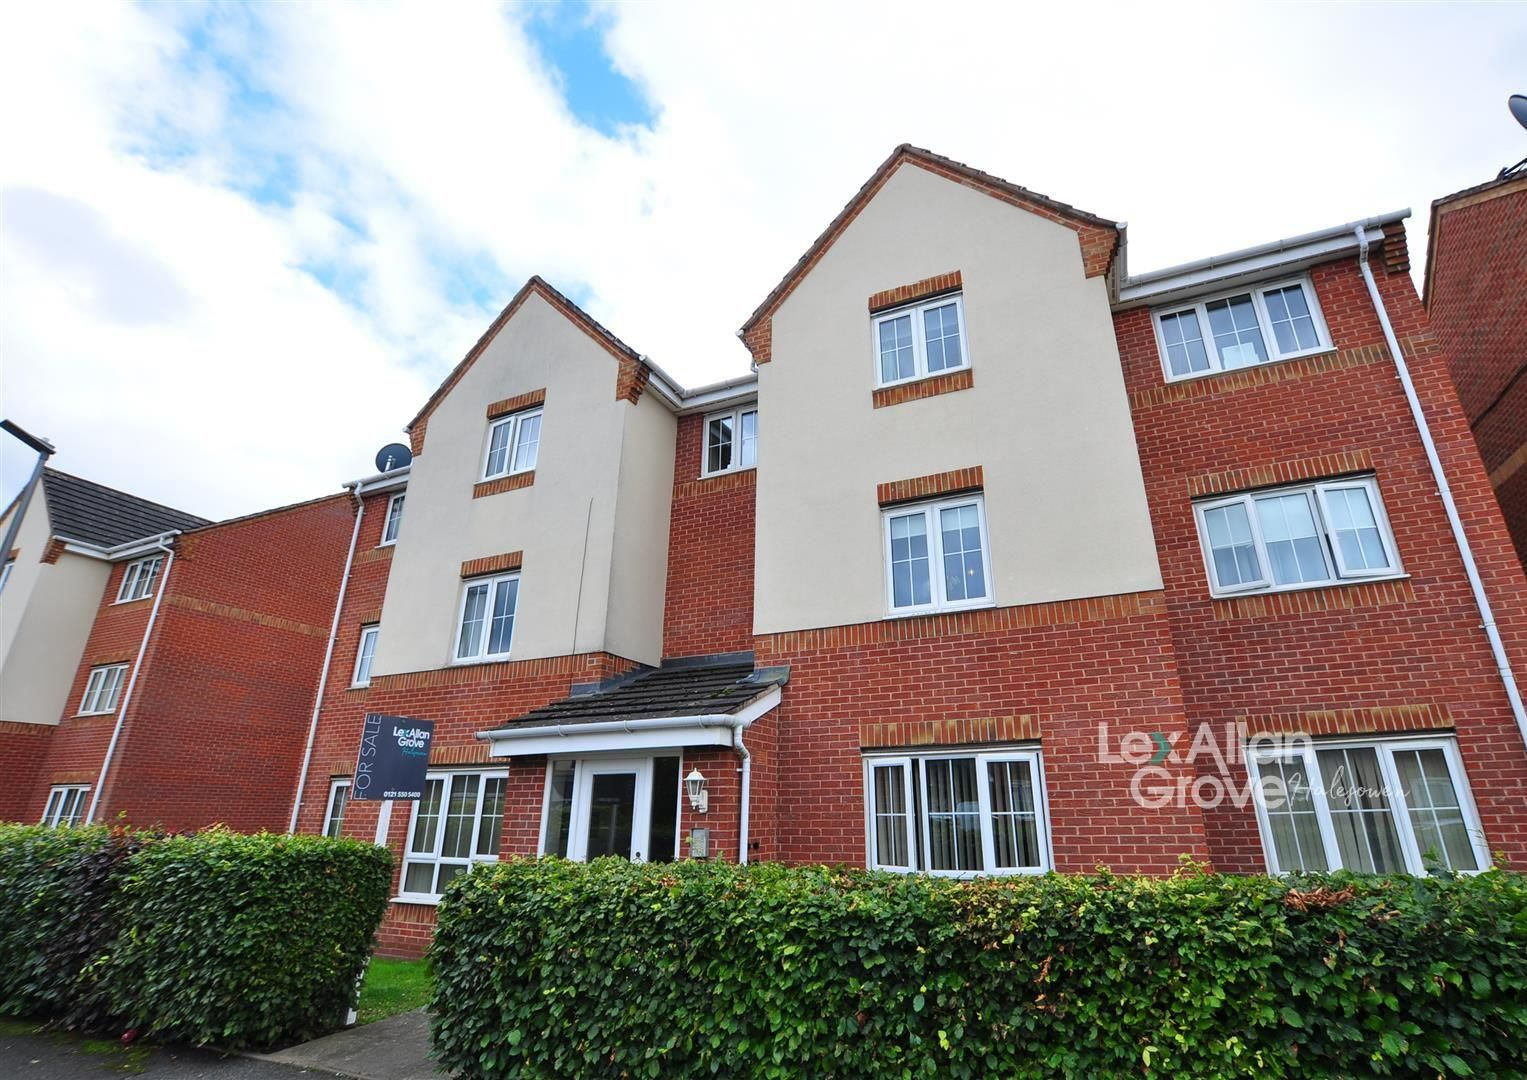 2 bed apartment for sale, B64